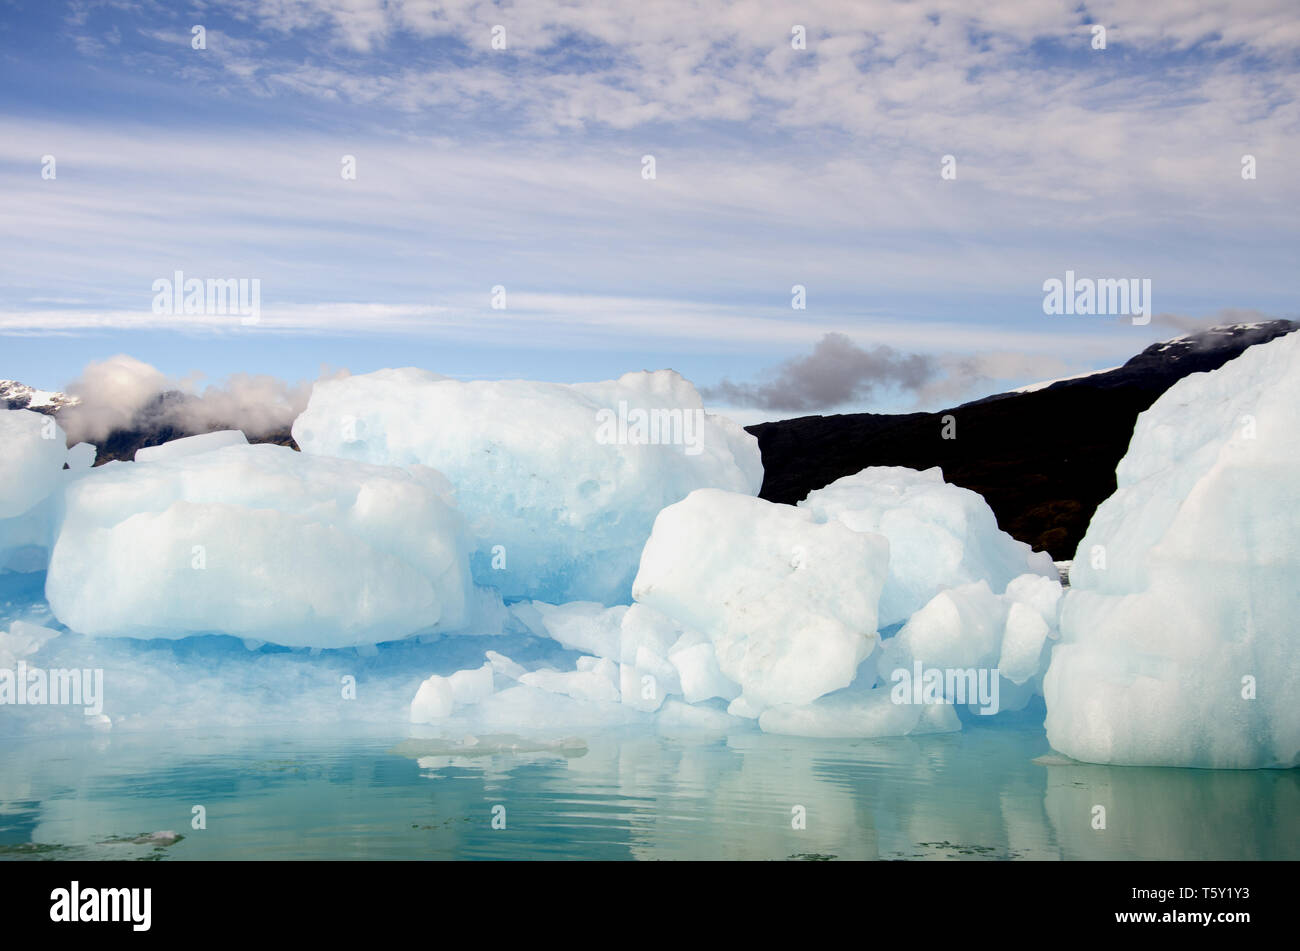 Blocks of ice, bergy bits and brash ice, in Chile's Falcon fjord. A glacier lies beyond them. - Stock Image